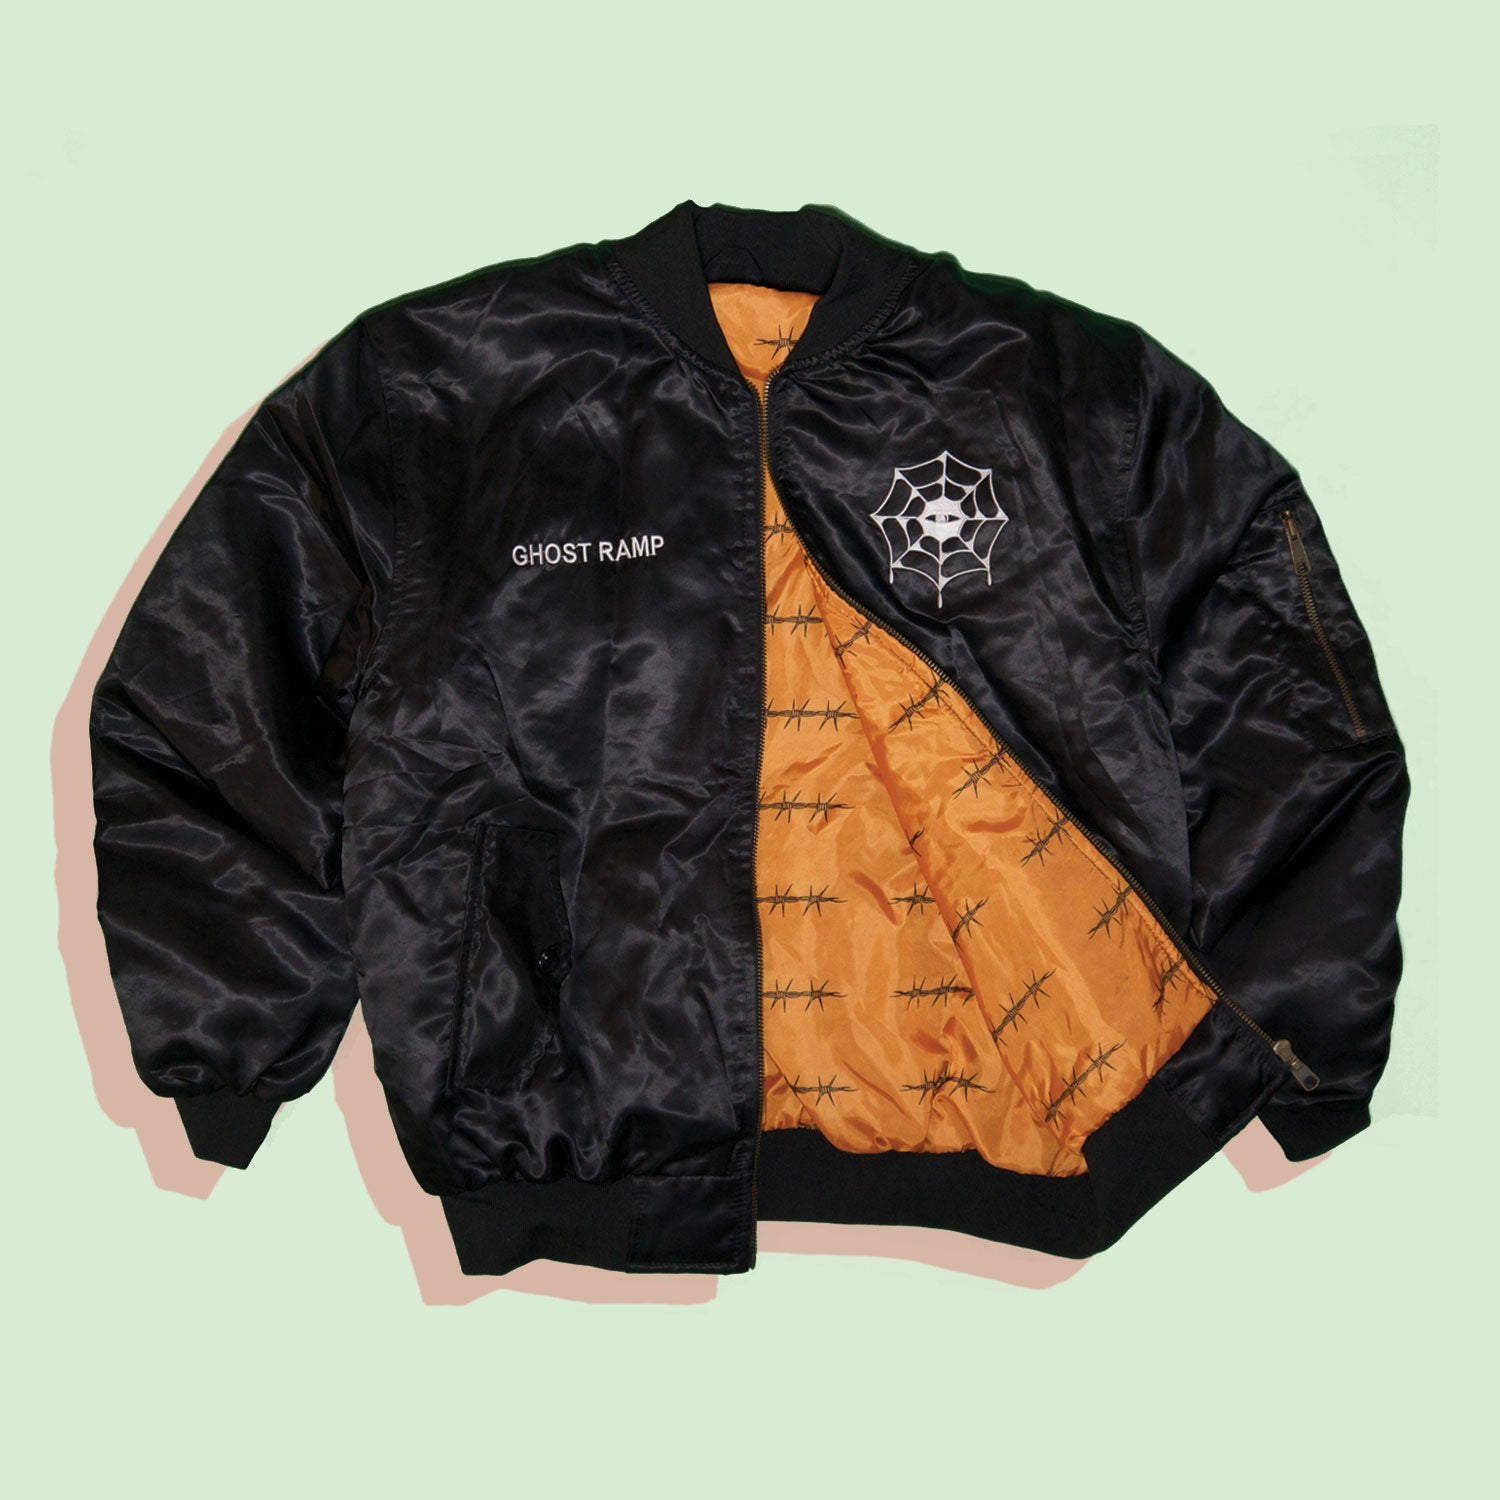 GHOST RAMP BOMBER JACKET